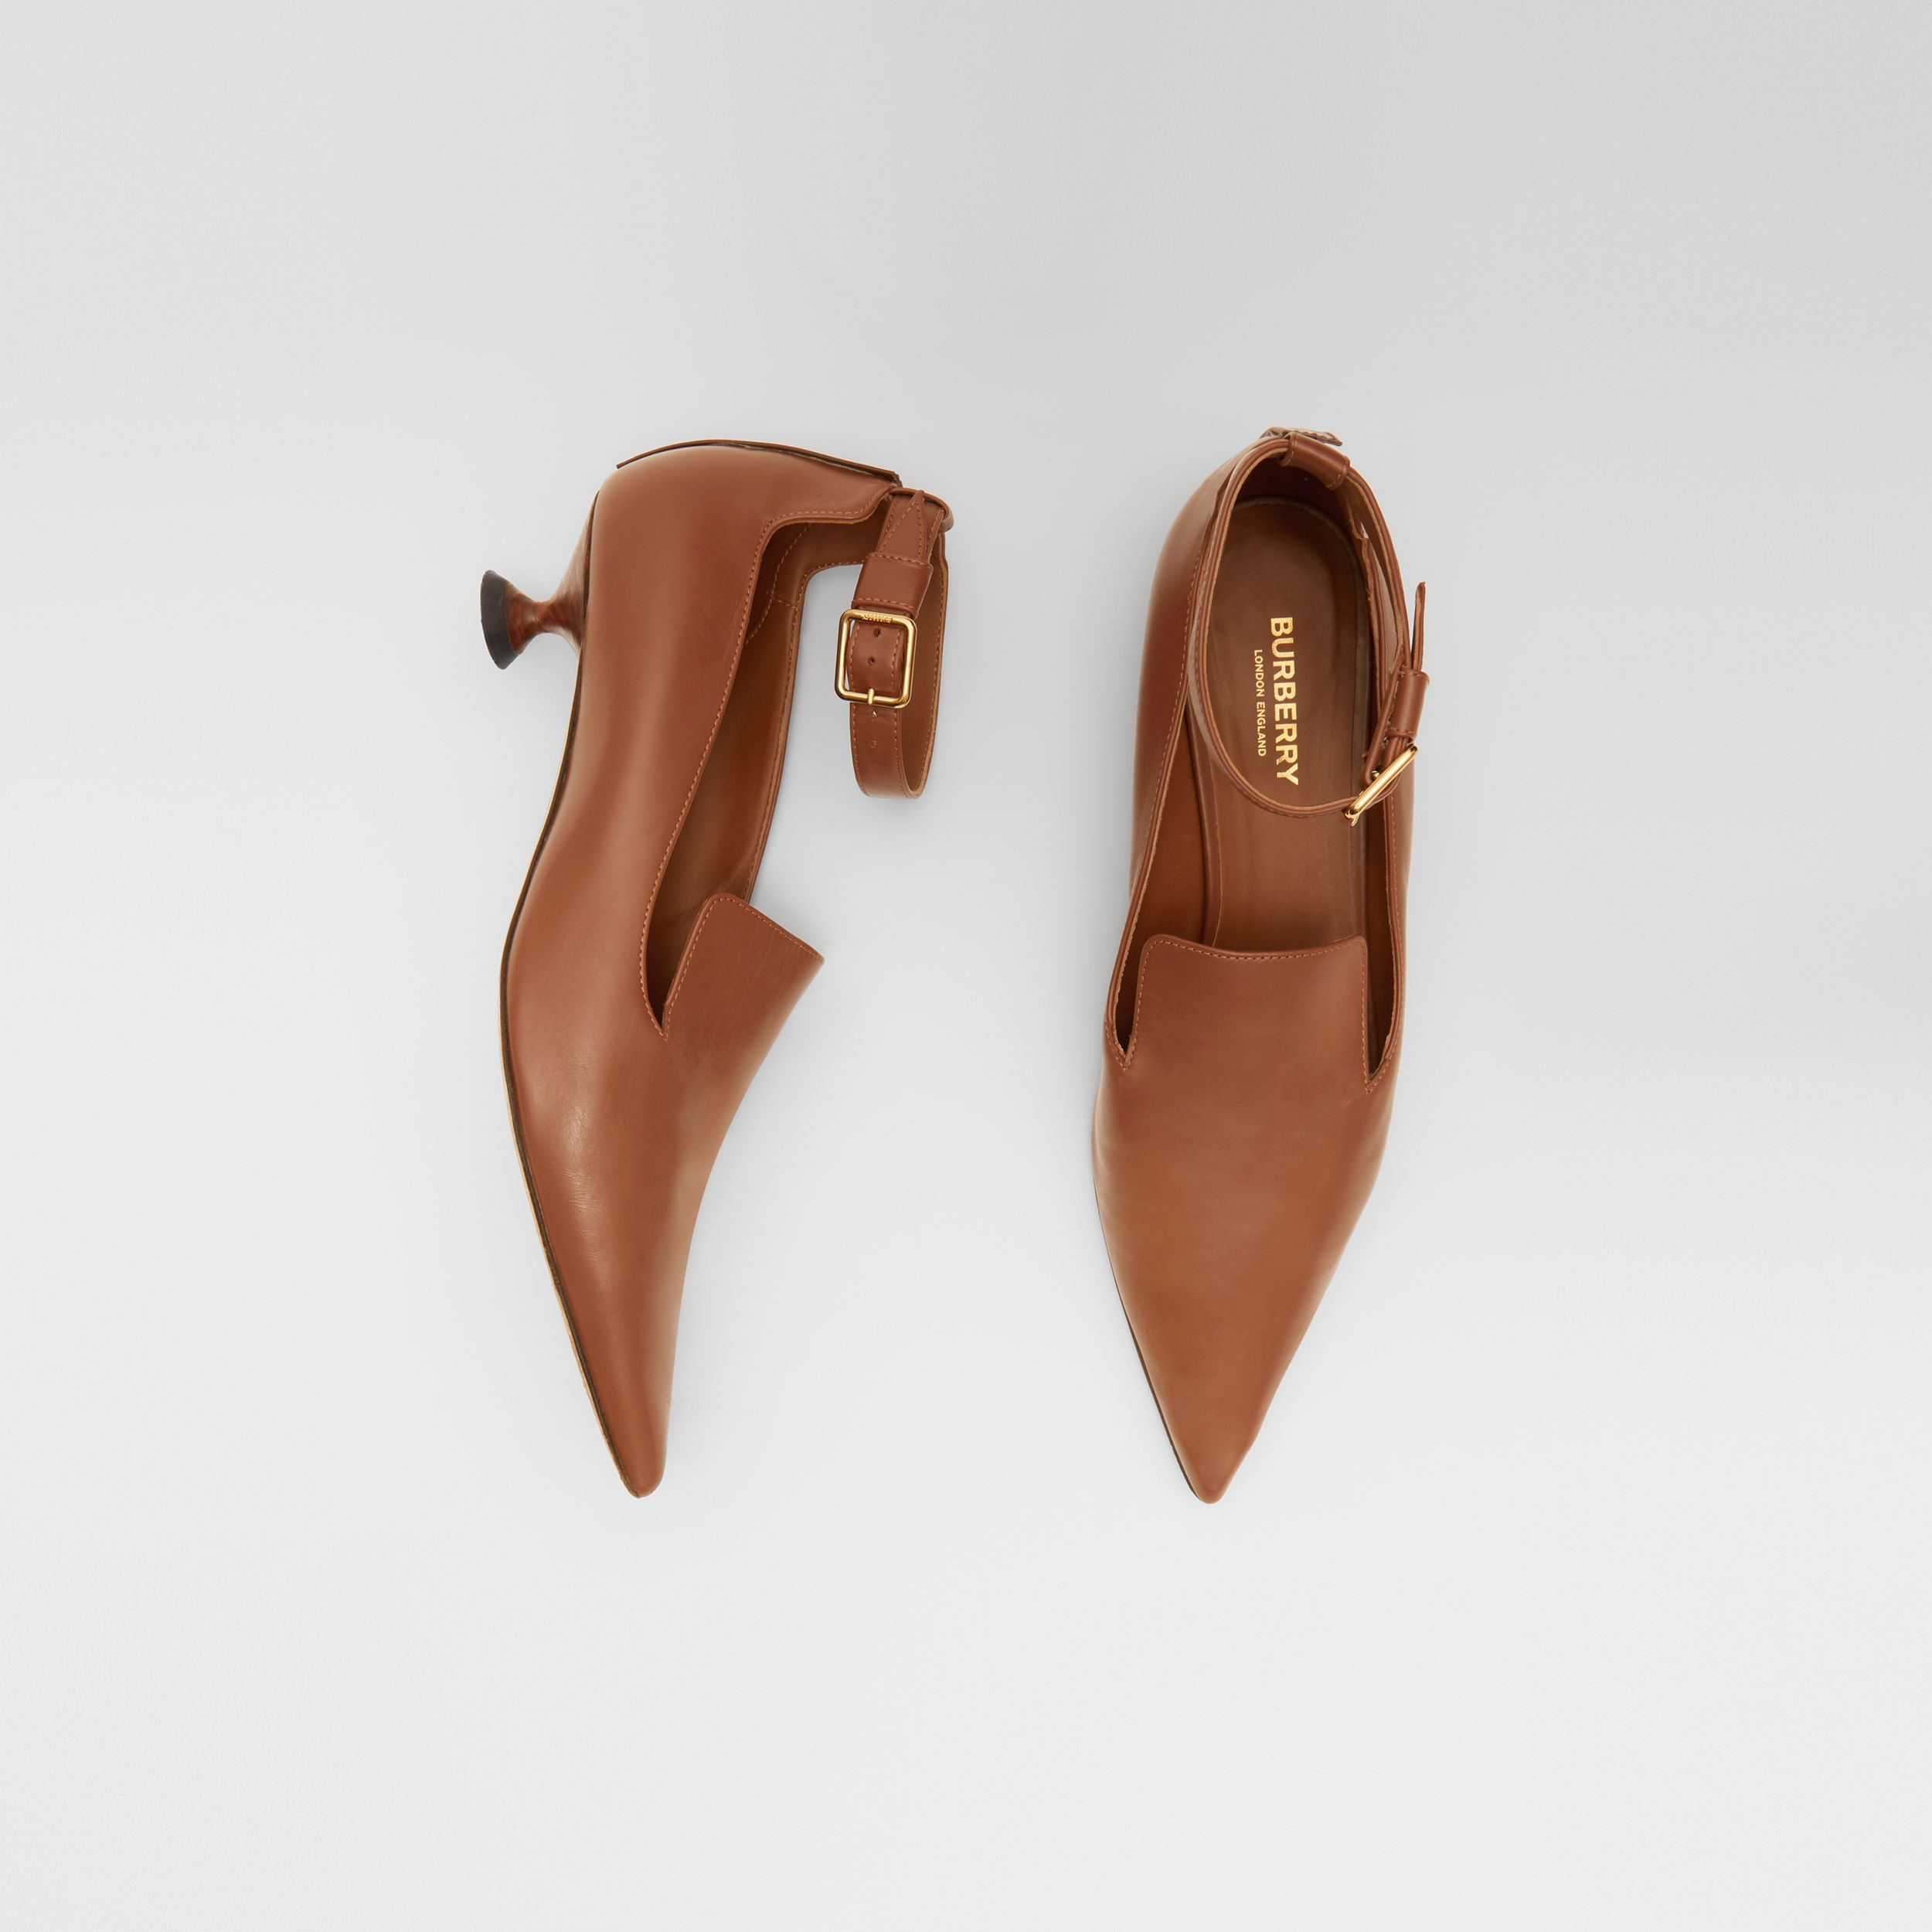 Leather Point-toe Kitten-heel Pumps in Soft Camel - Women | Burberry Hong Kong S.A.R - 1